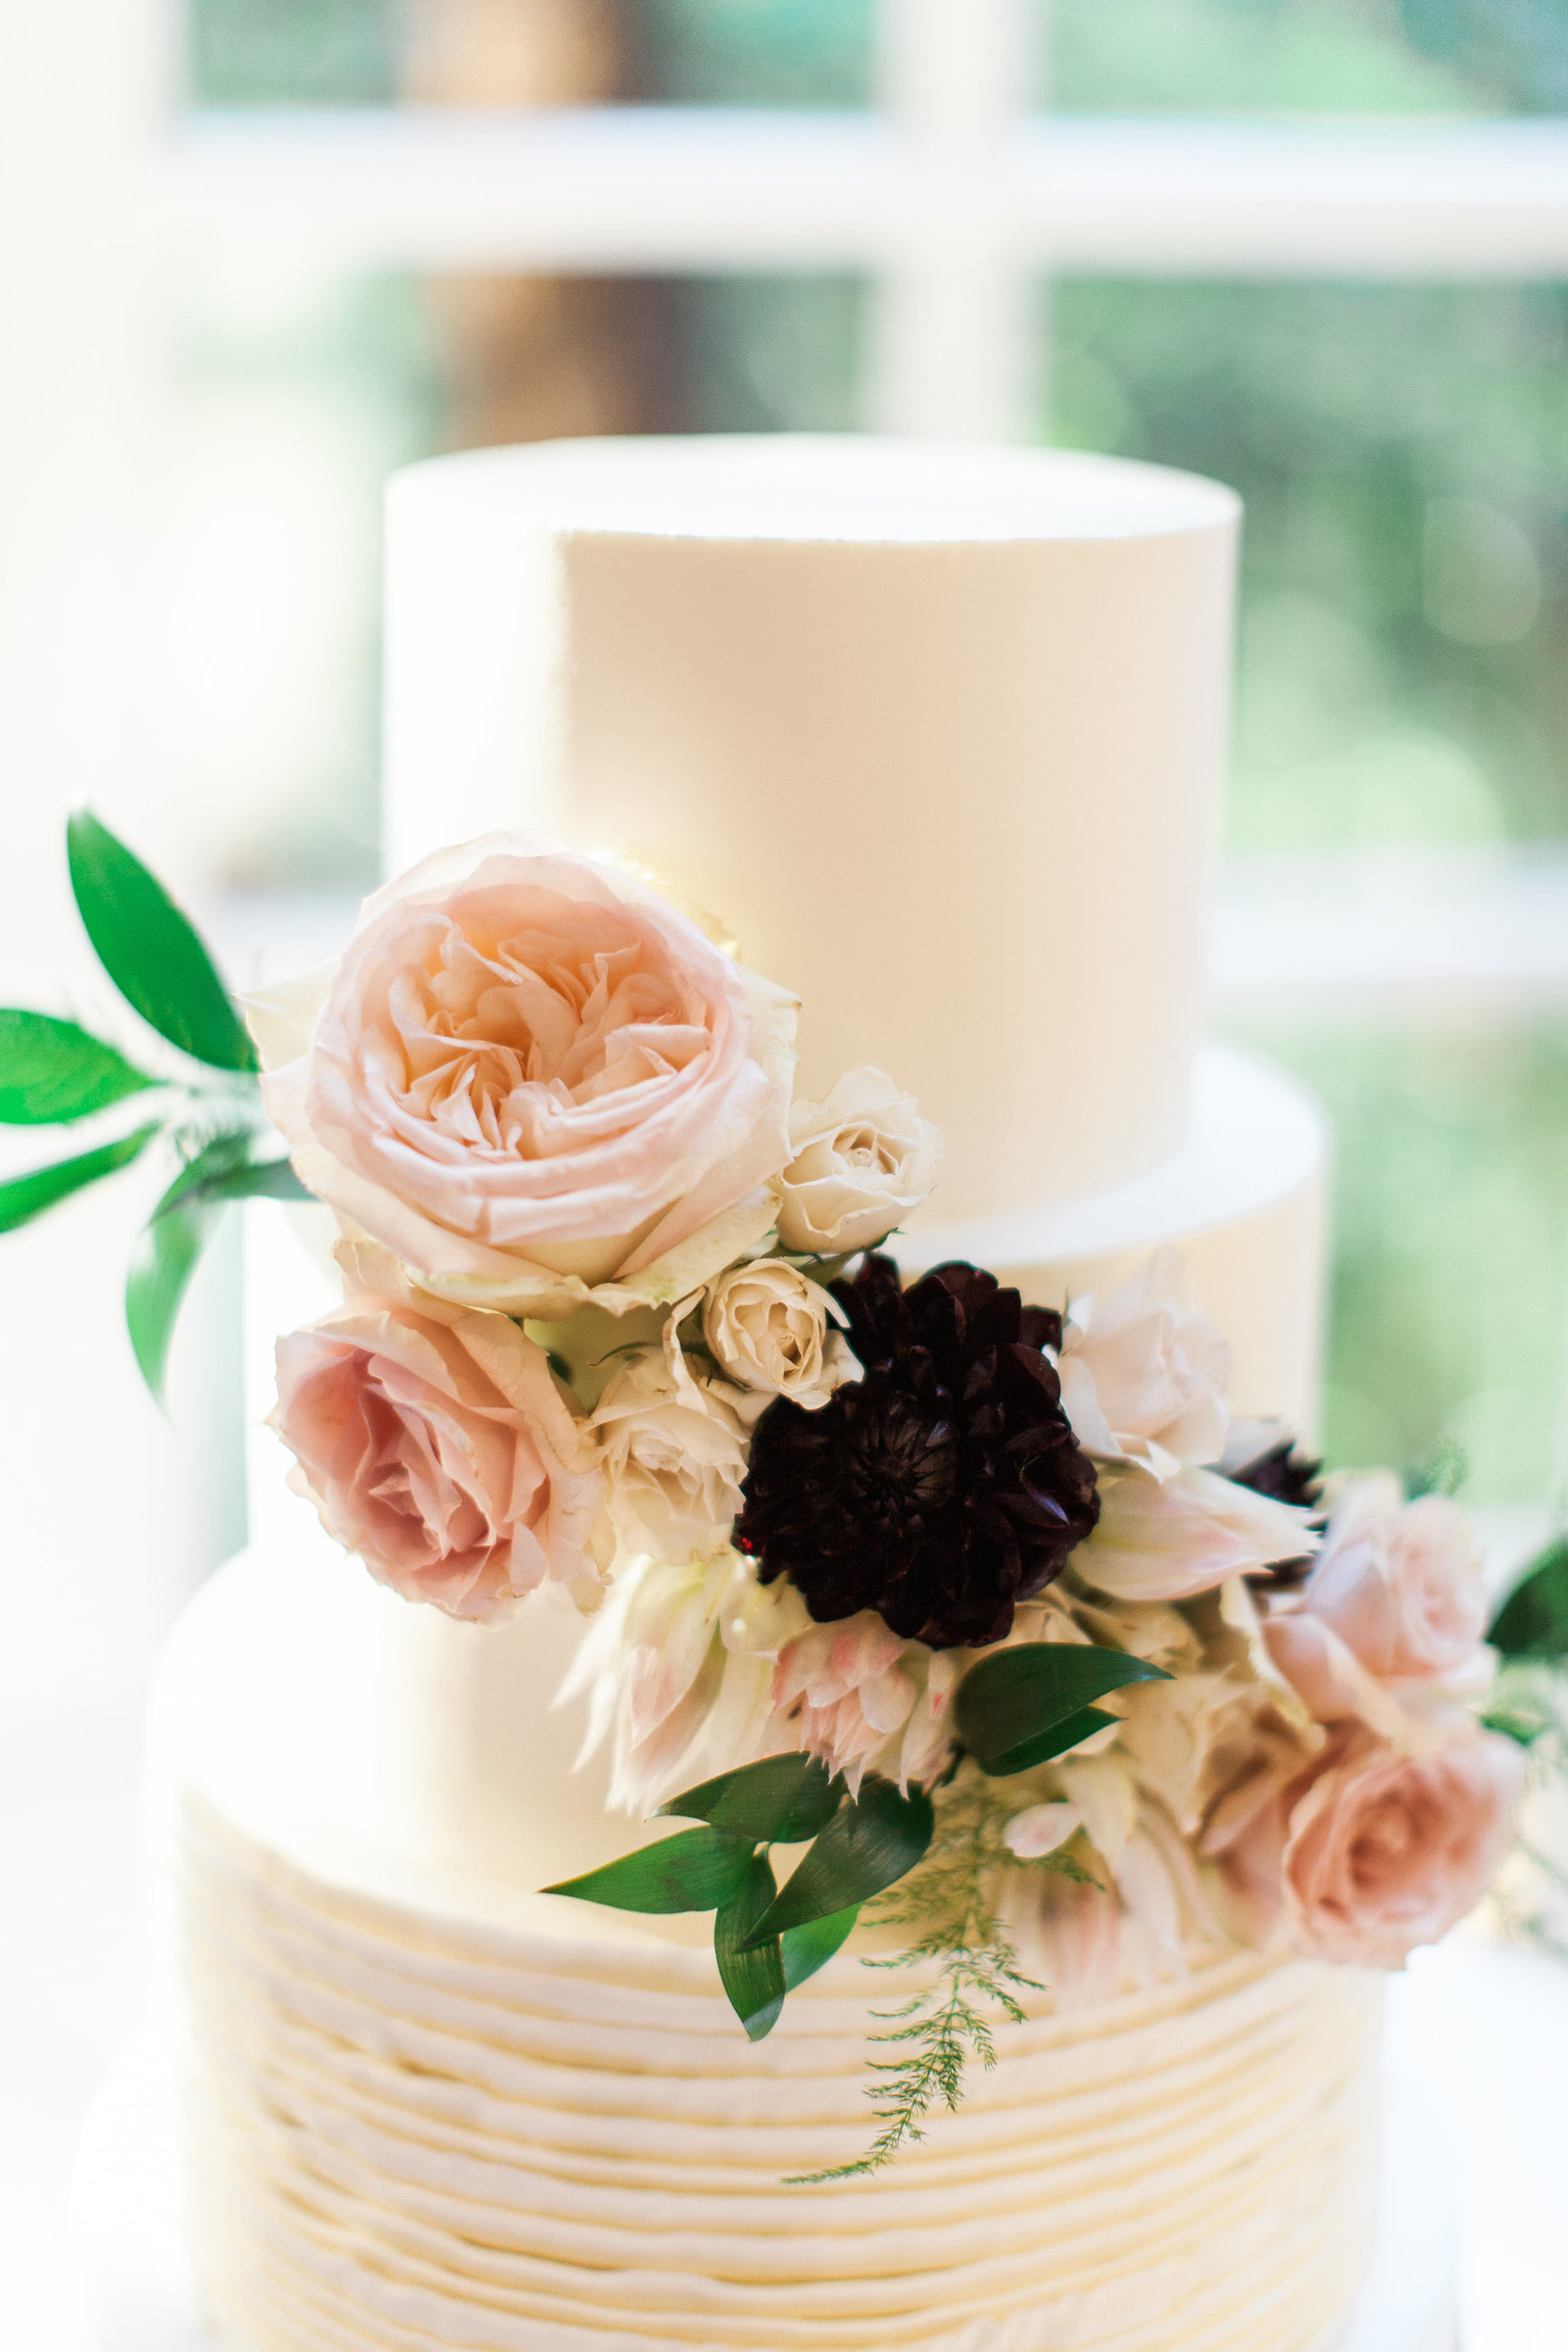 Calamigos-Ranch-Wedding-White-Pink-Floral-Cake